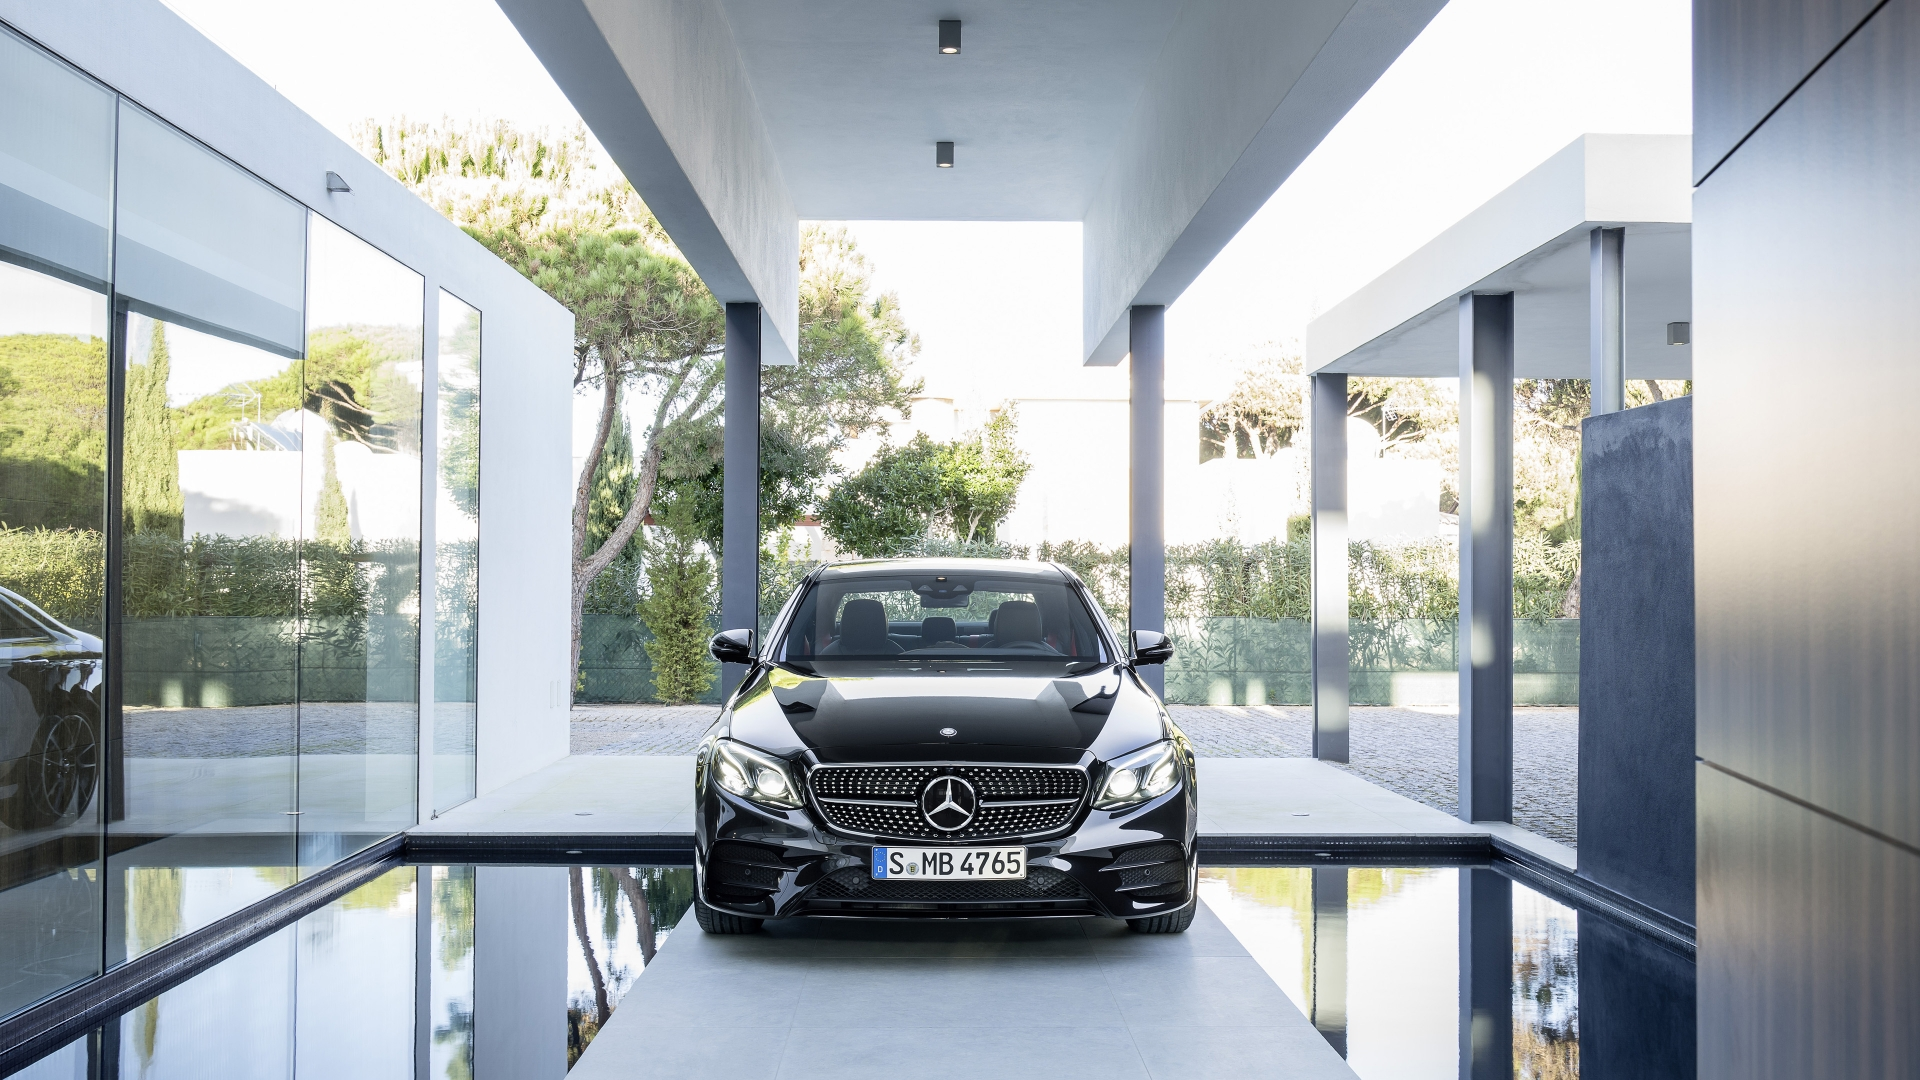 Mercedes E 43 AMG 4Matic 2017 - Photo 07 - Taille: 1920x1080